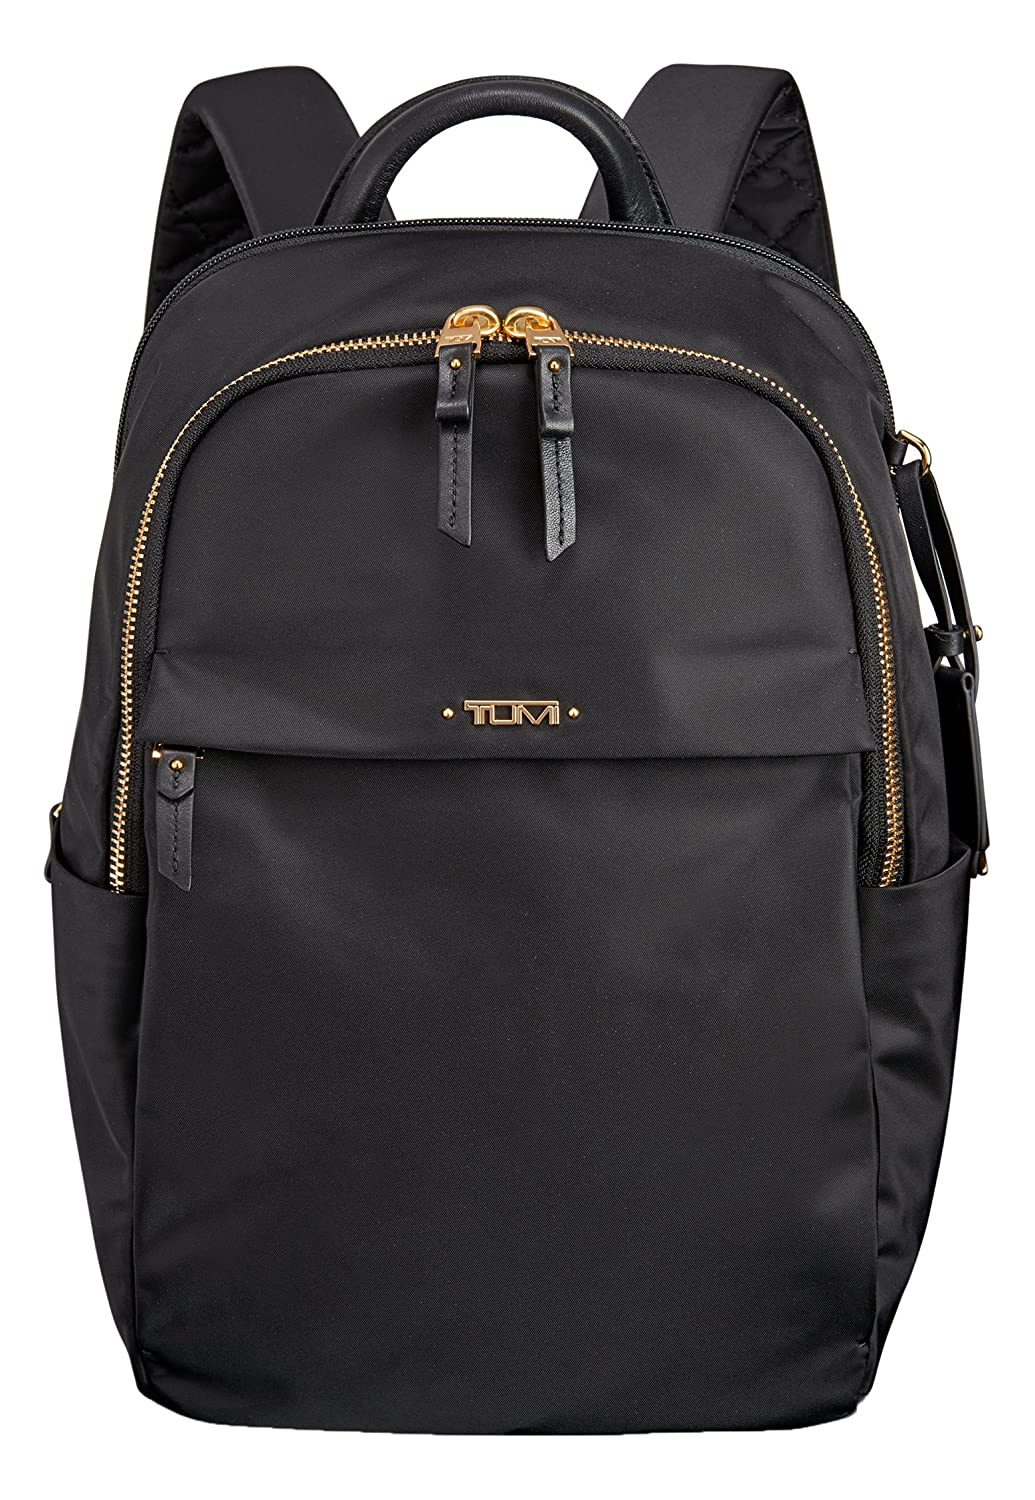 TUMI - Voyageur Dori Small Laptop Backpack - 12 Inch Computer Bag For Women 7d5571298c